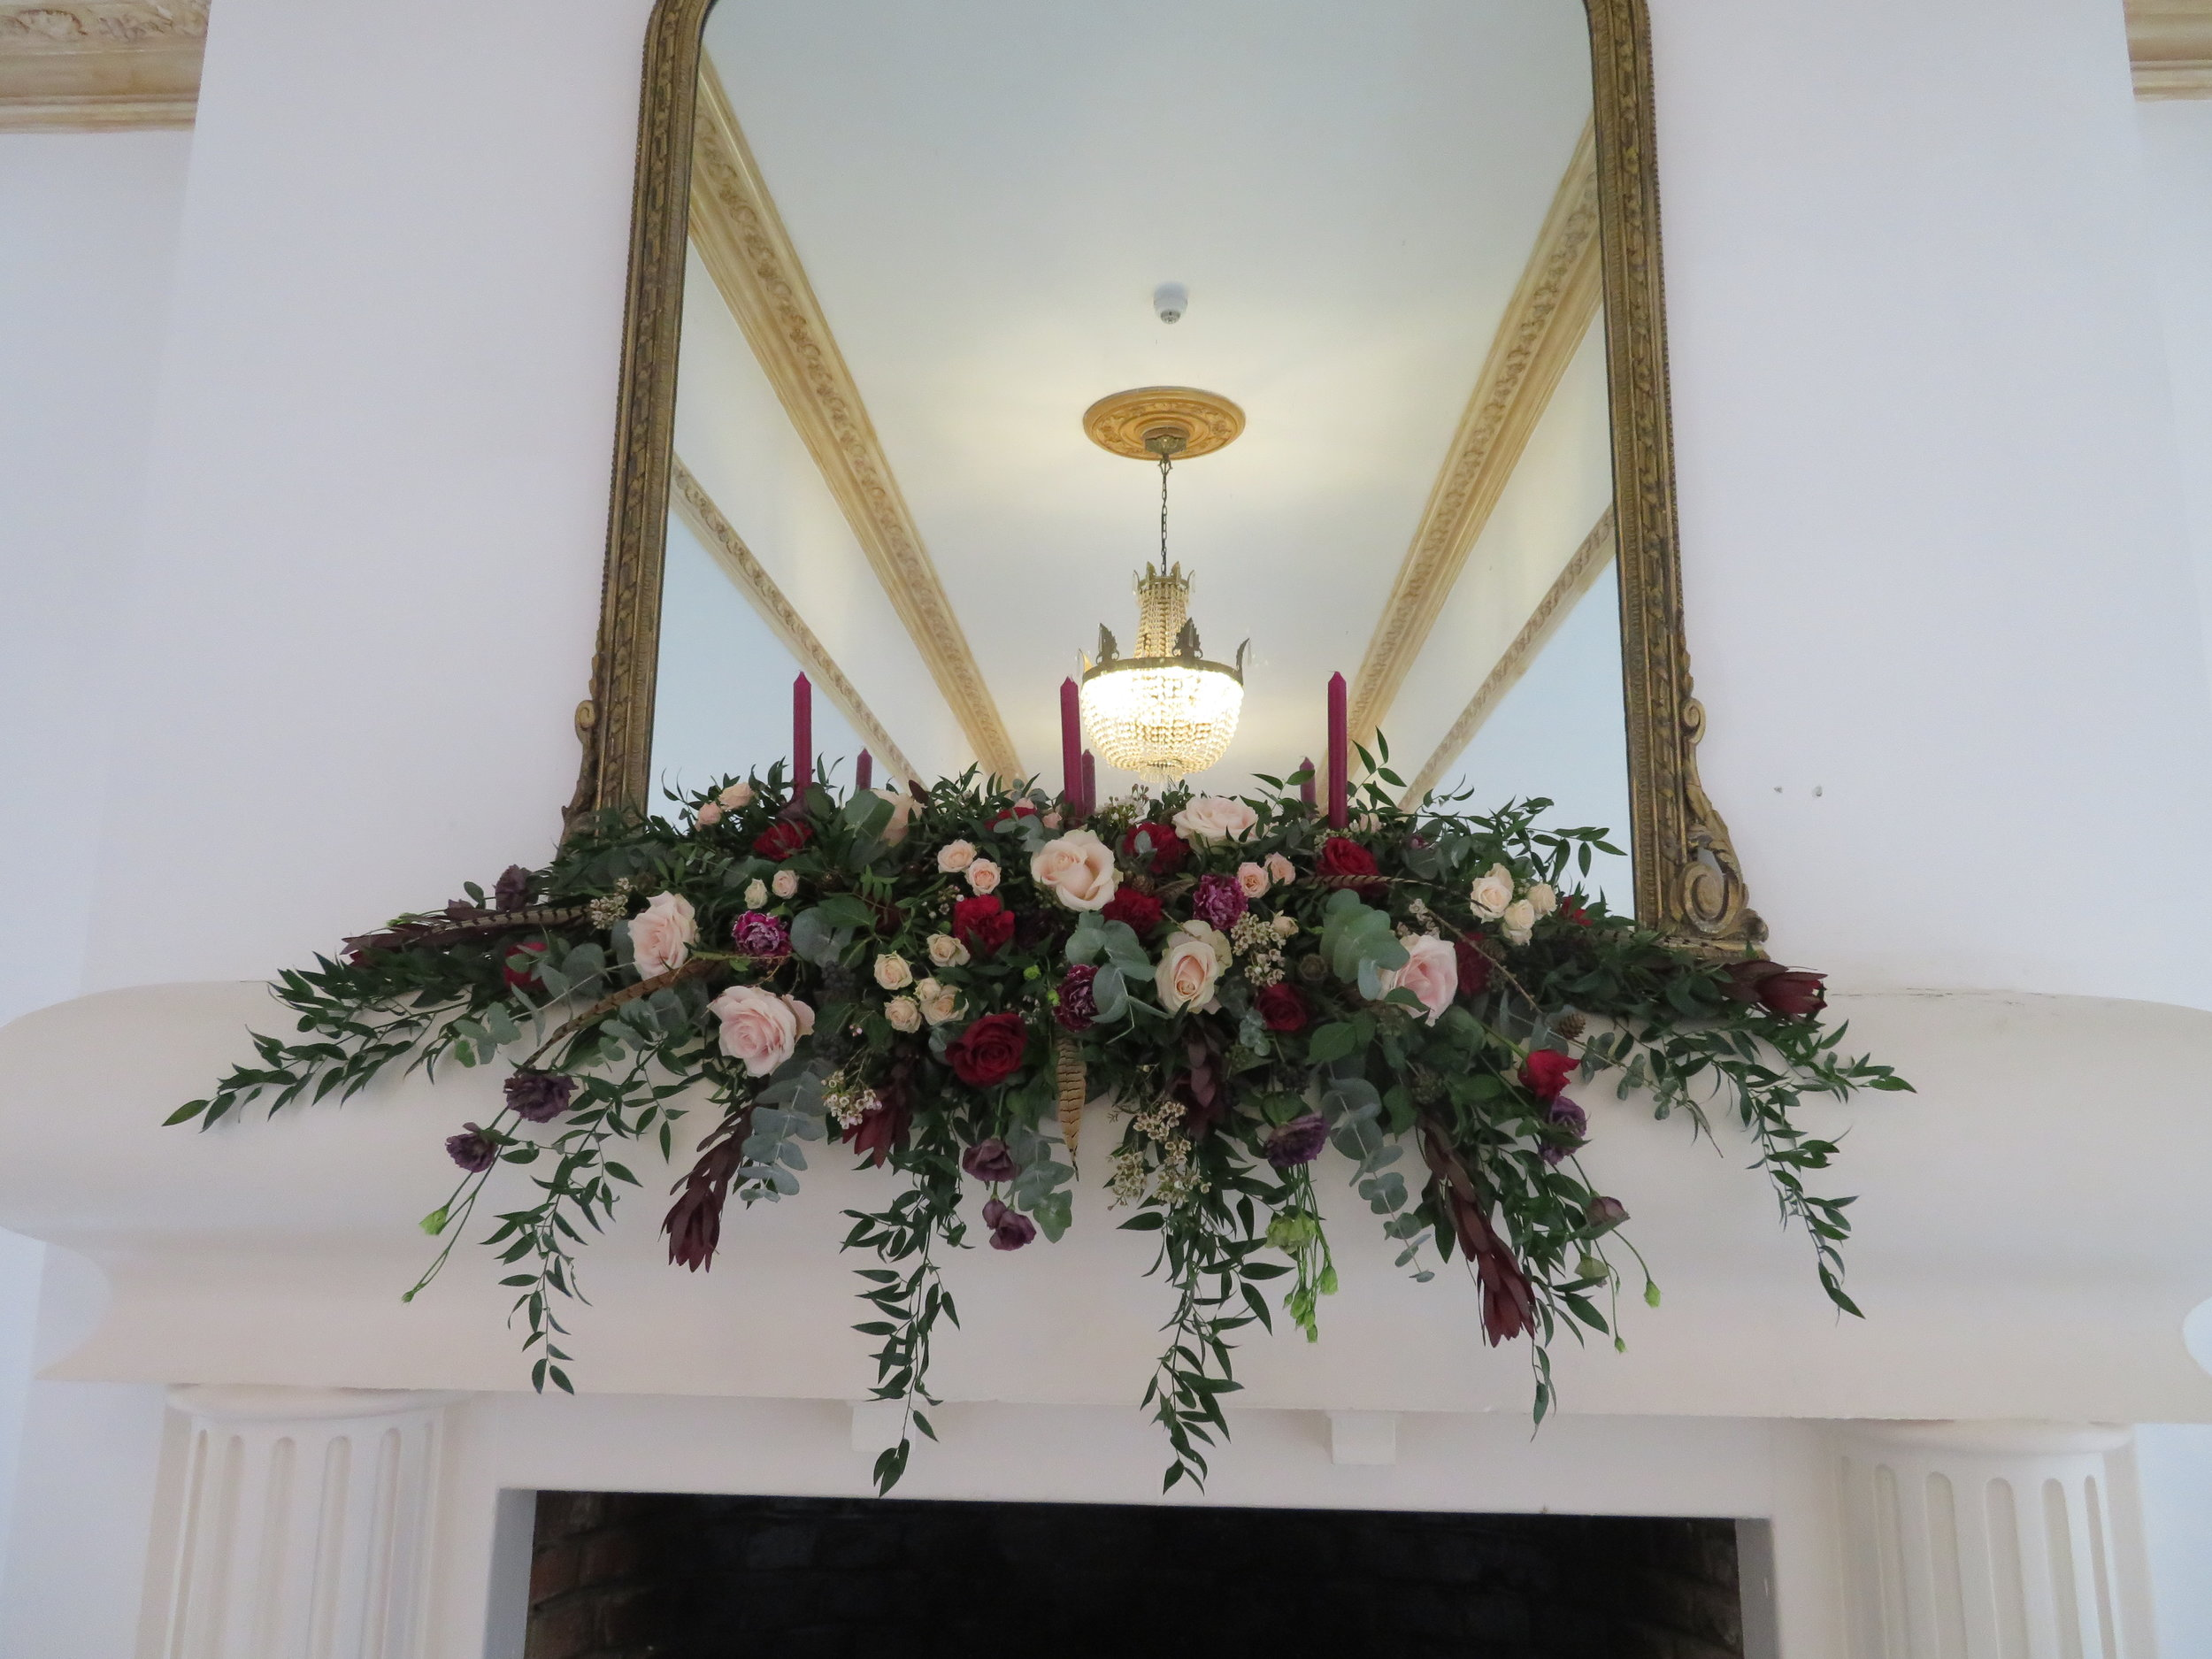 The mantelpiece arrangement which was 6 foot across